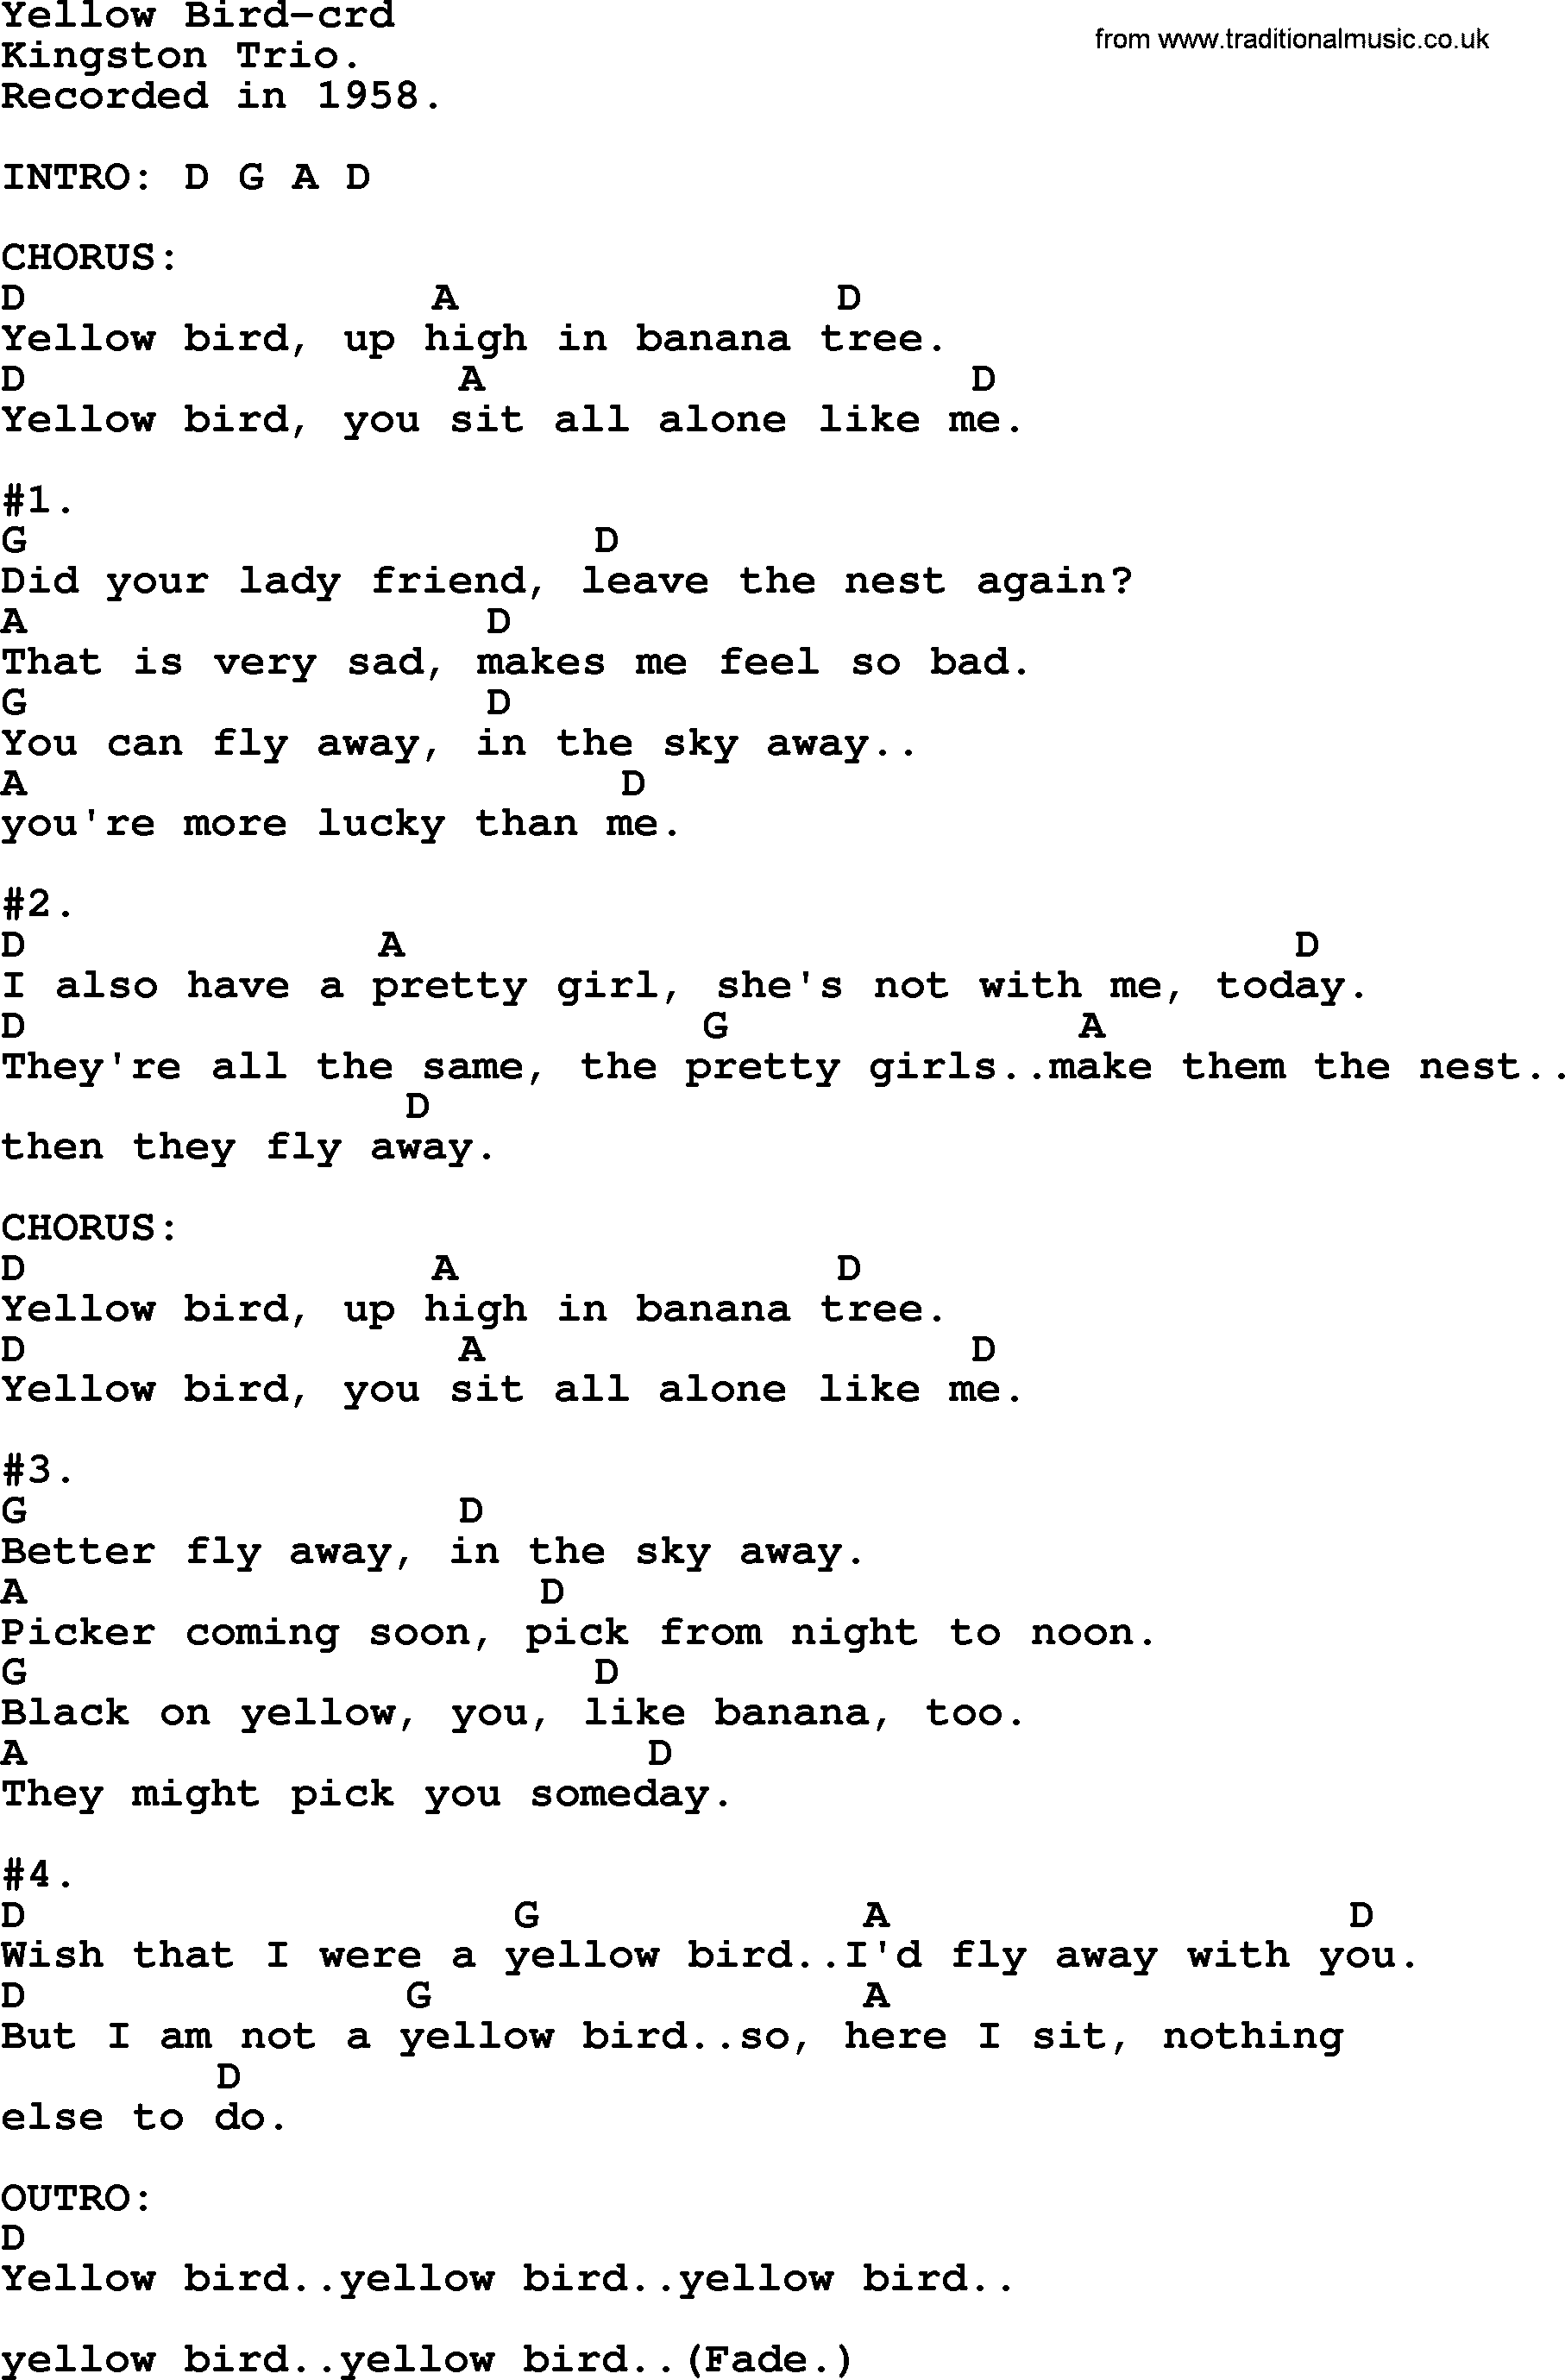 Kingston Trio Song Yellow Bird Lyrics And Chords